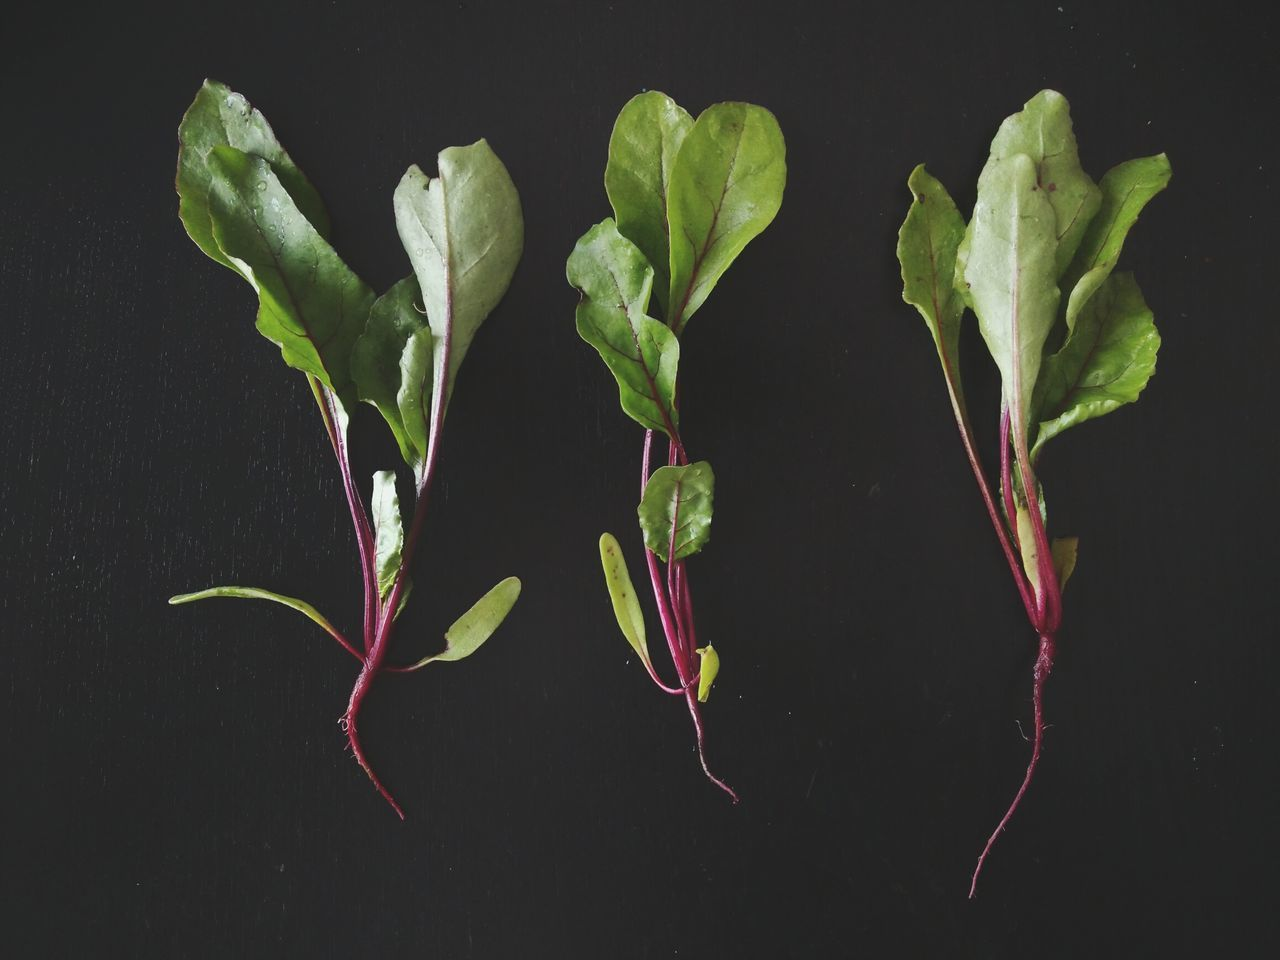 Black Background Studio Shot Food And Drink Healthy Eating Vegetable No People Close-up Plant Indoors  Freshness Food Vegetarian Food Raw Food Playing With Food Kitchen Art Backgrounds Salad Plants 🌱 Roots